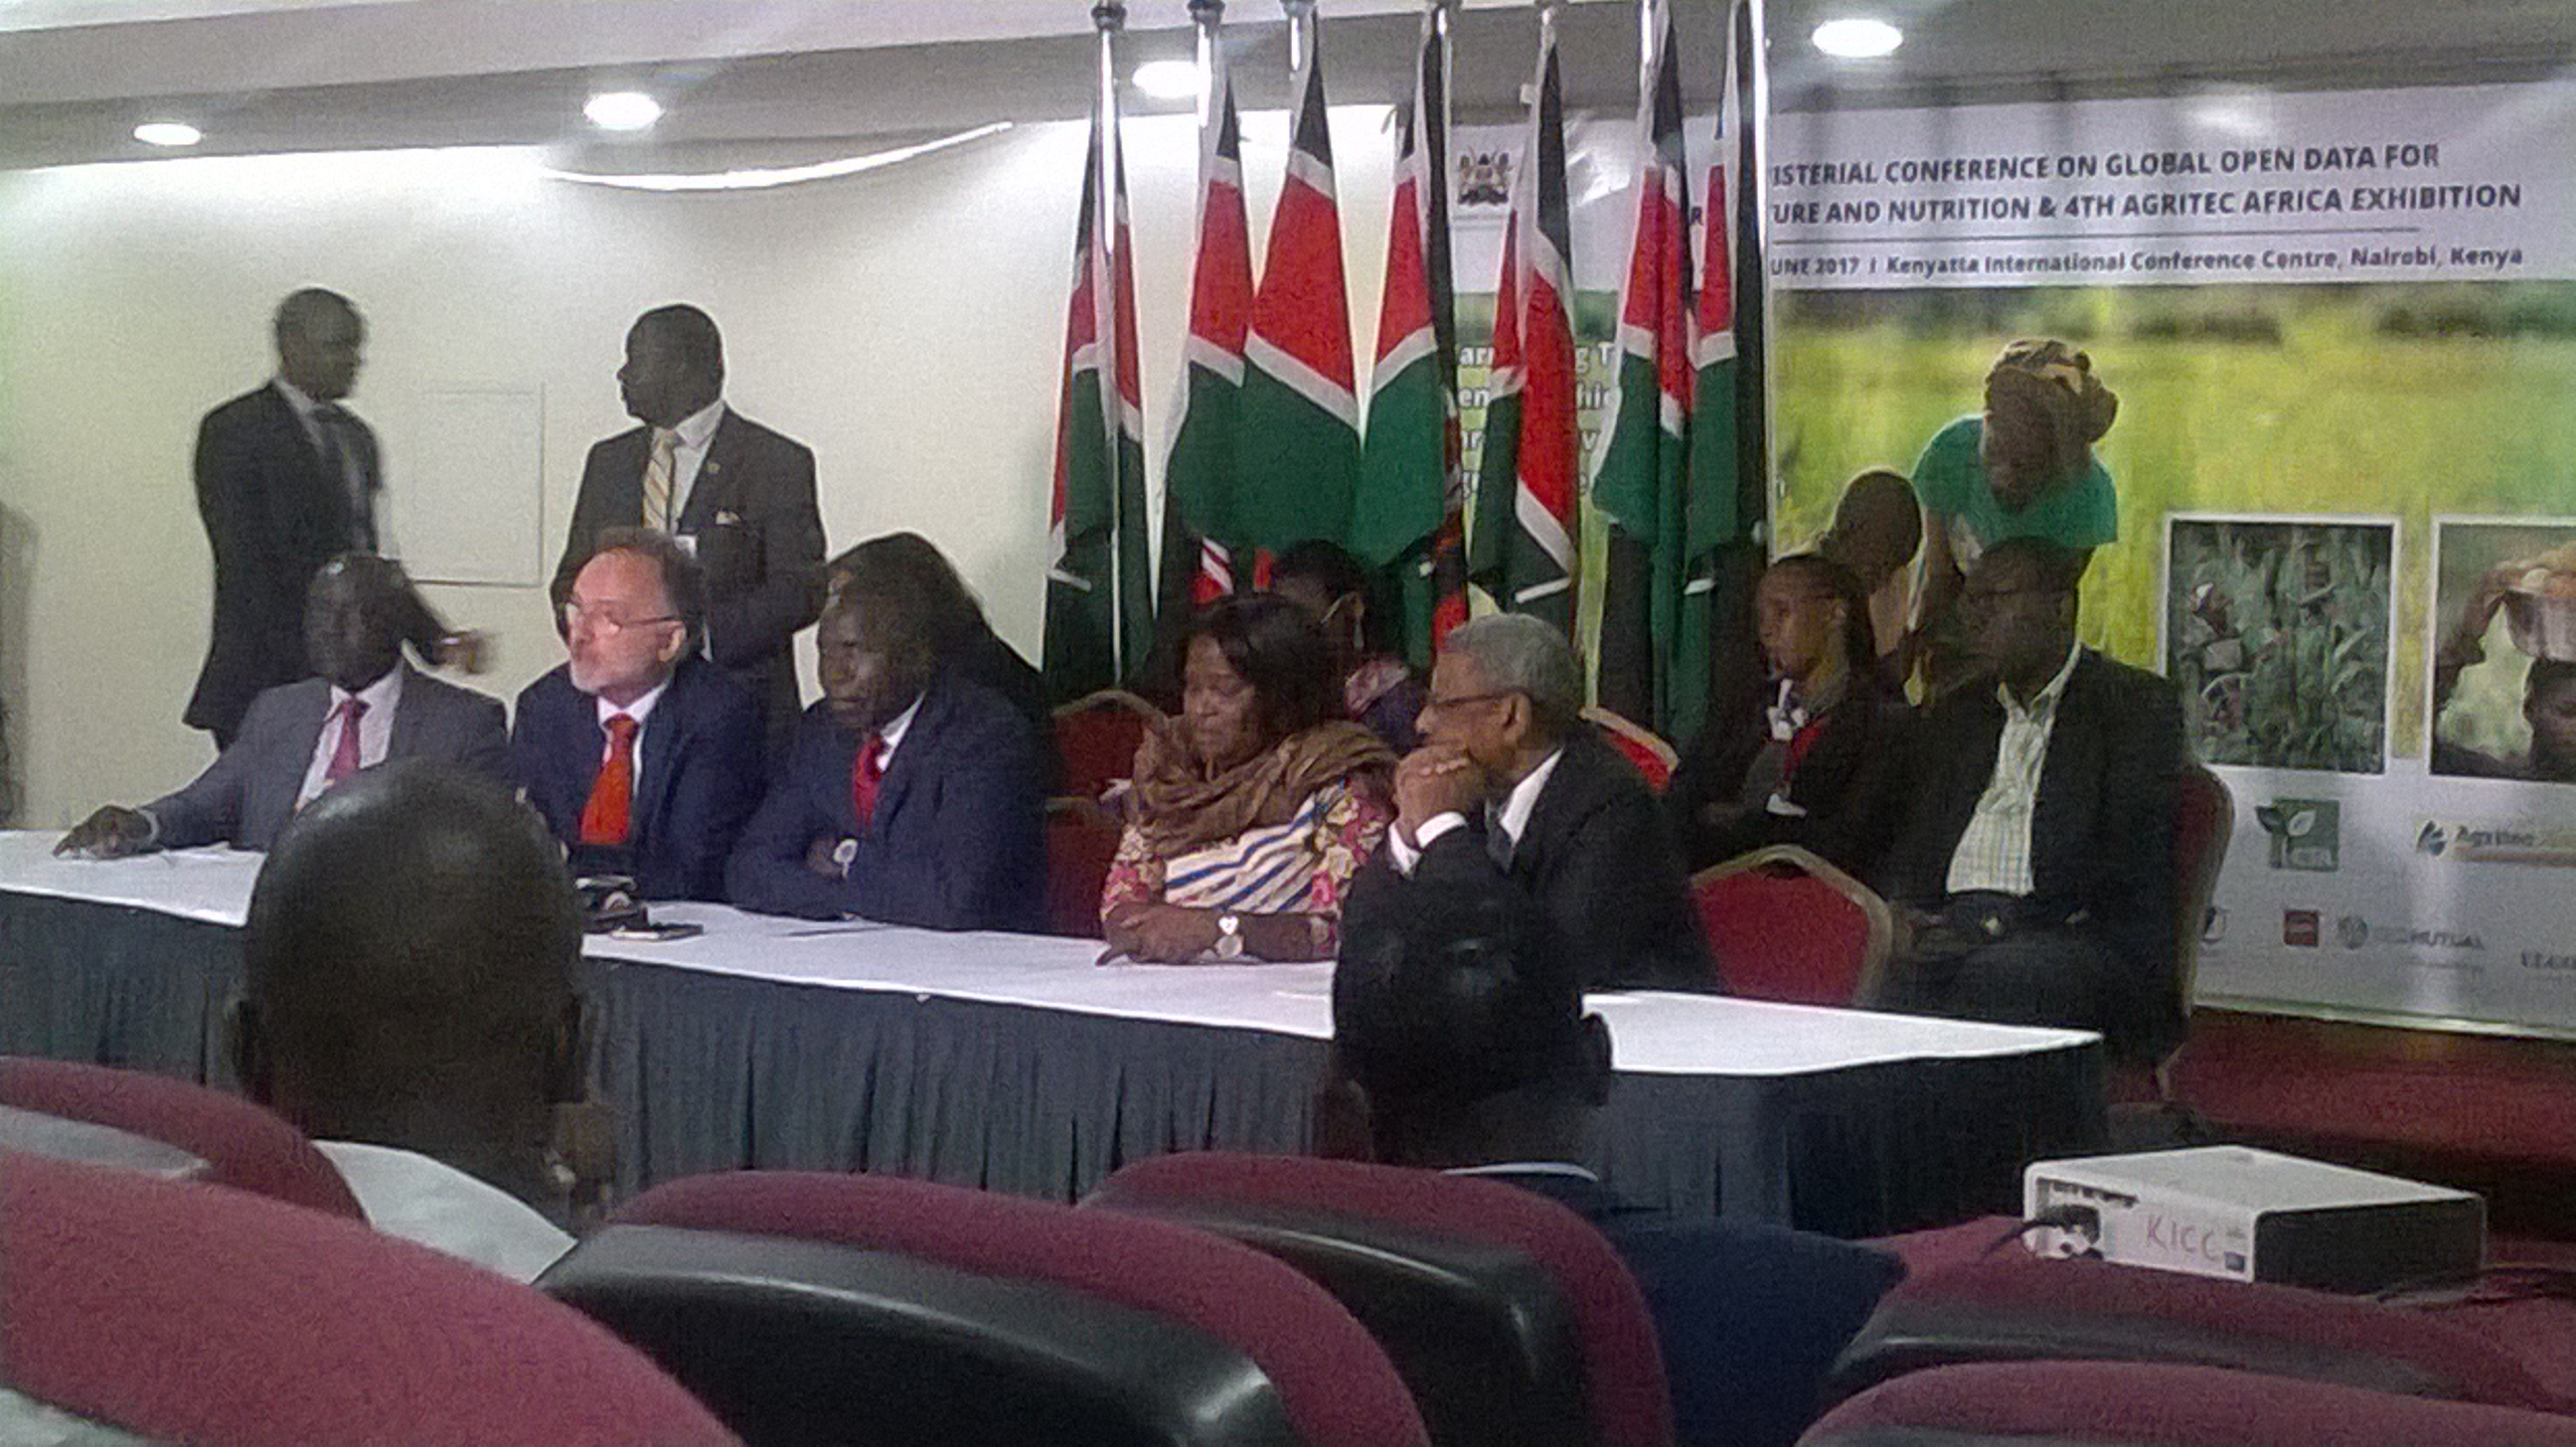 Photo: African ministers call for using and sharing agriculture data to boost food production and contribute to making Africa food secure. Credit: Justus Wanjala | IDN-INPS